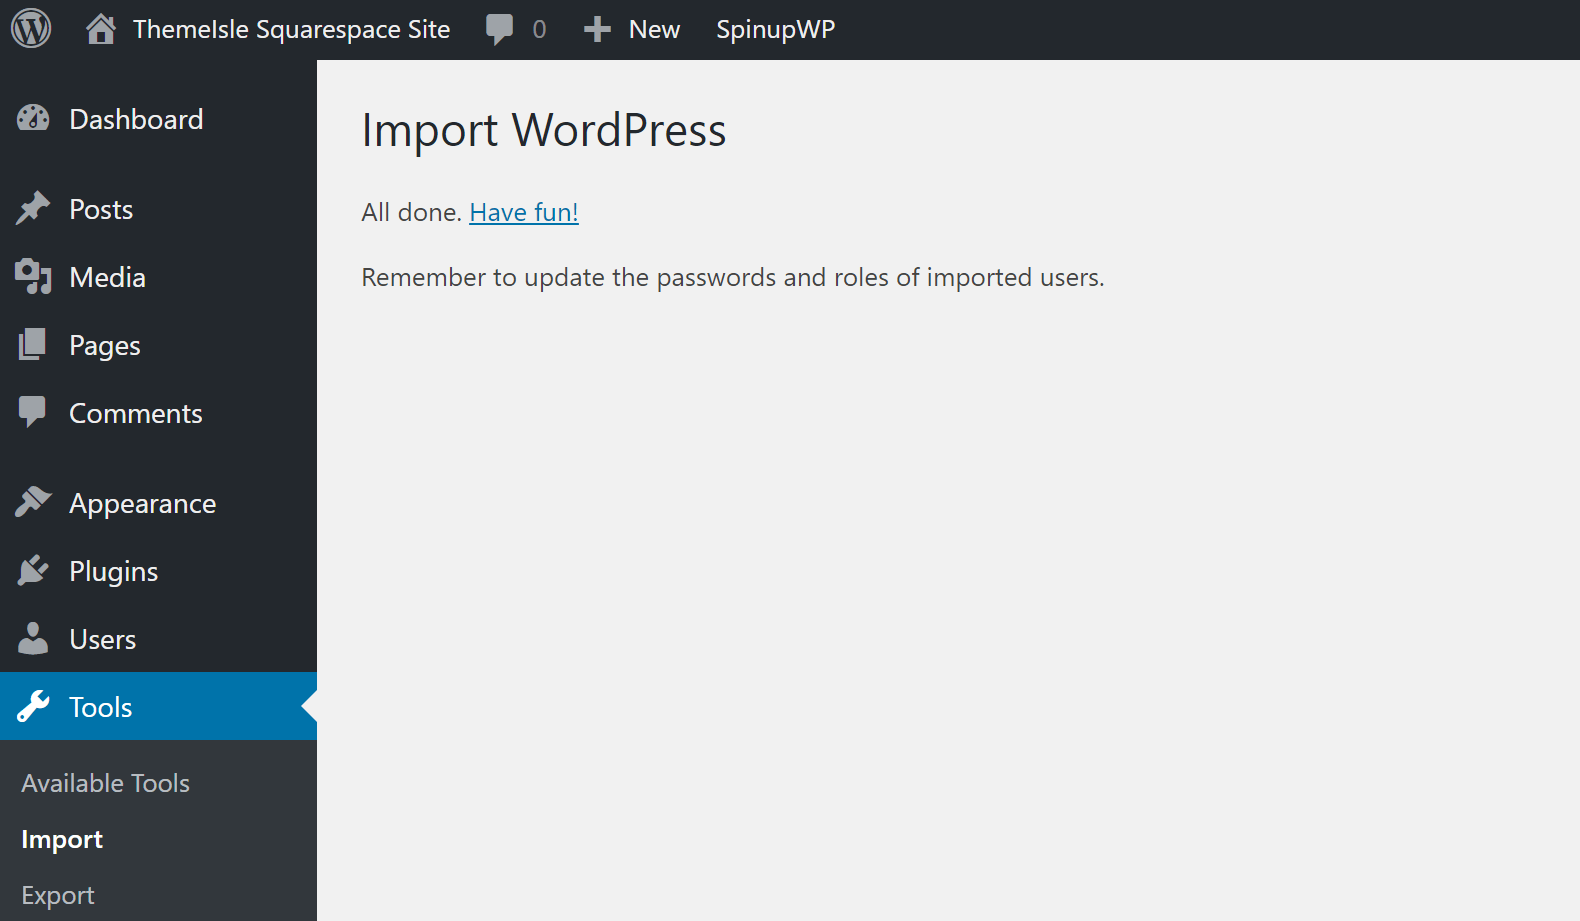 Import WordPress depuis Squarespace